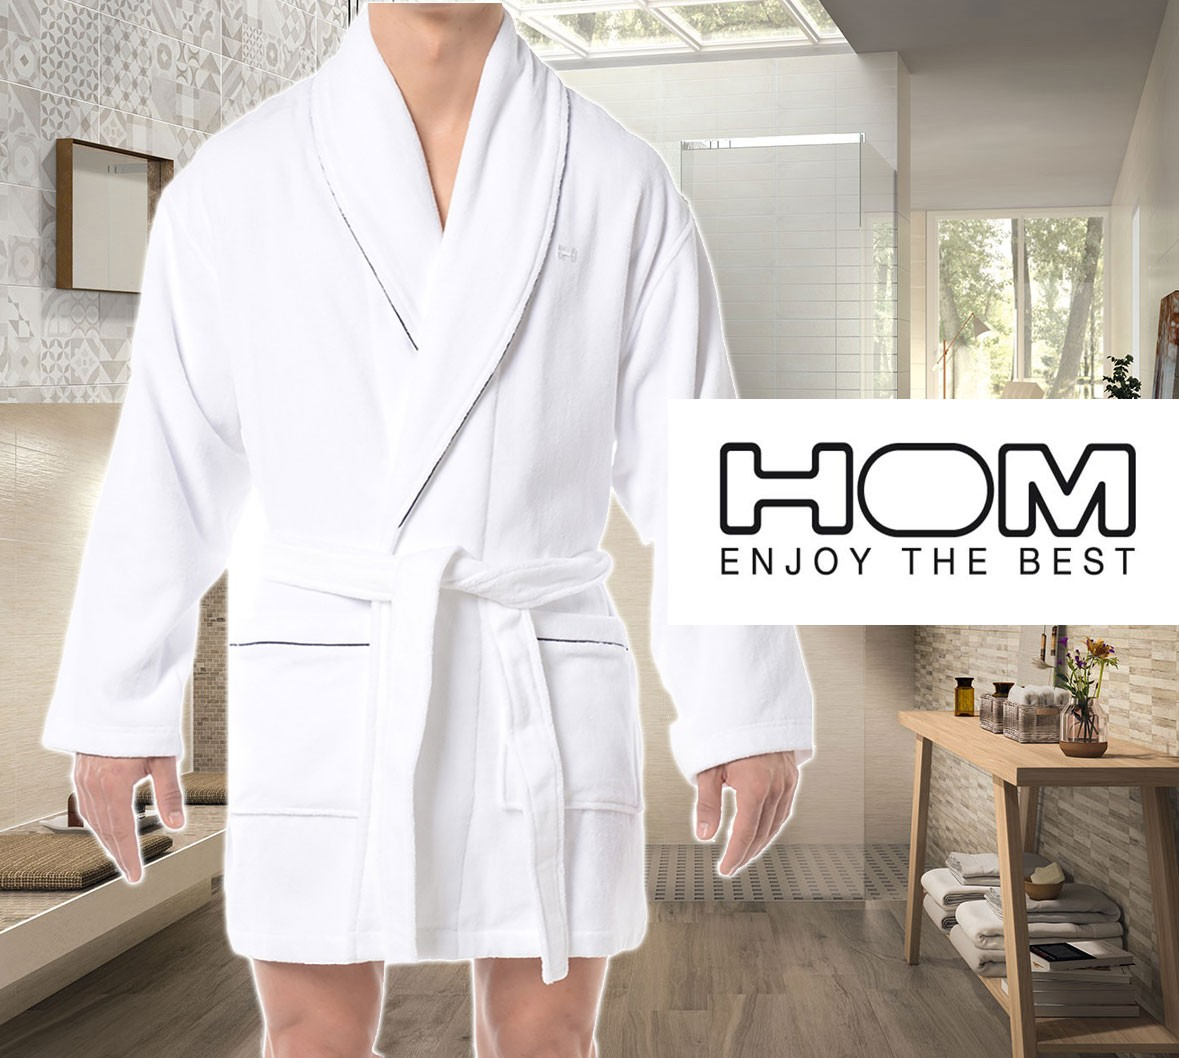 Hom personal bathrobe Kimono made 2016 collection for men